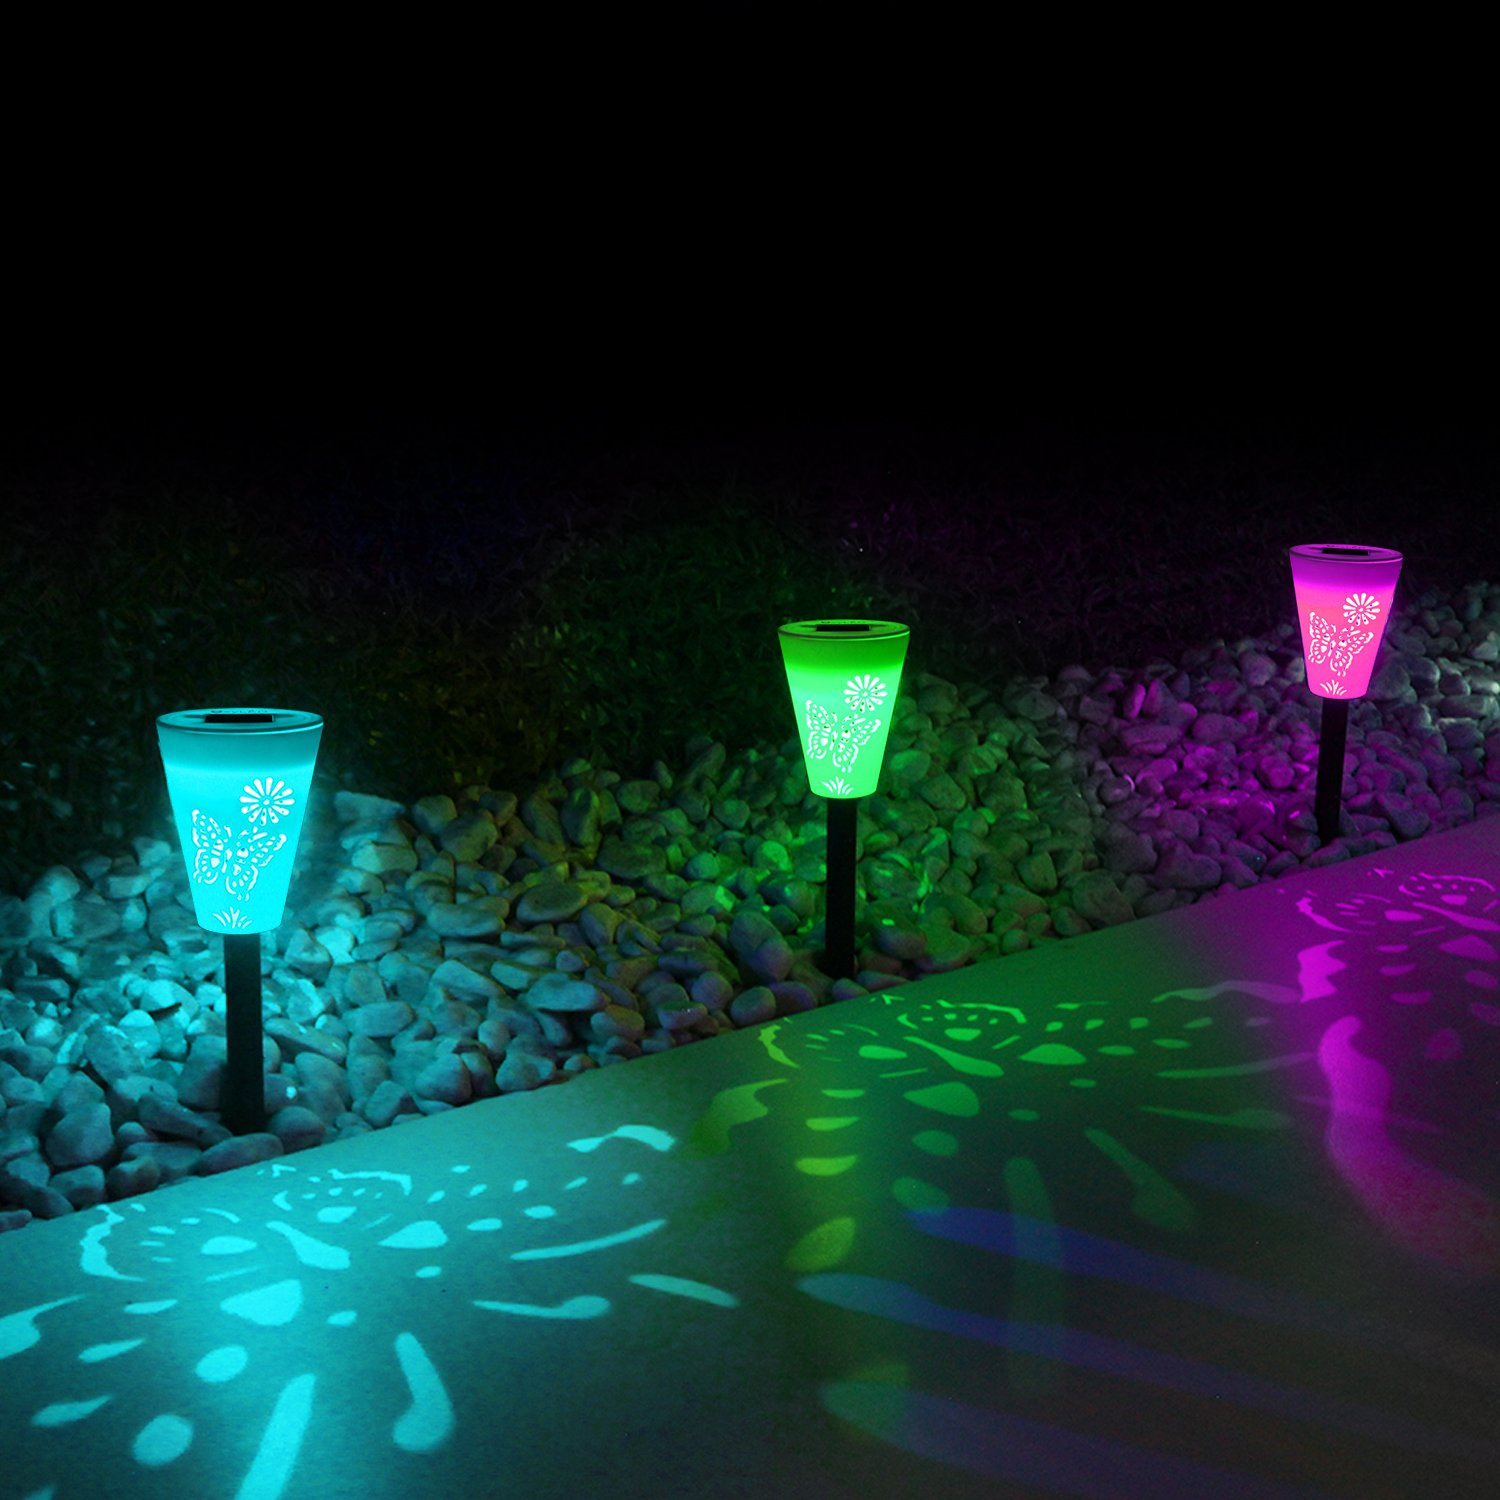 OxyLED Solar Path Light, Hollowed Butterfly Pattern Solar Garden Lights, LED Path Lighting Low Voltage, Waterproof Color Changing Pathway Solar Lights for Outdoor Lawn/Yard/ Walkway (3 Pack) by OxyLED